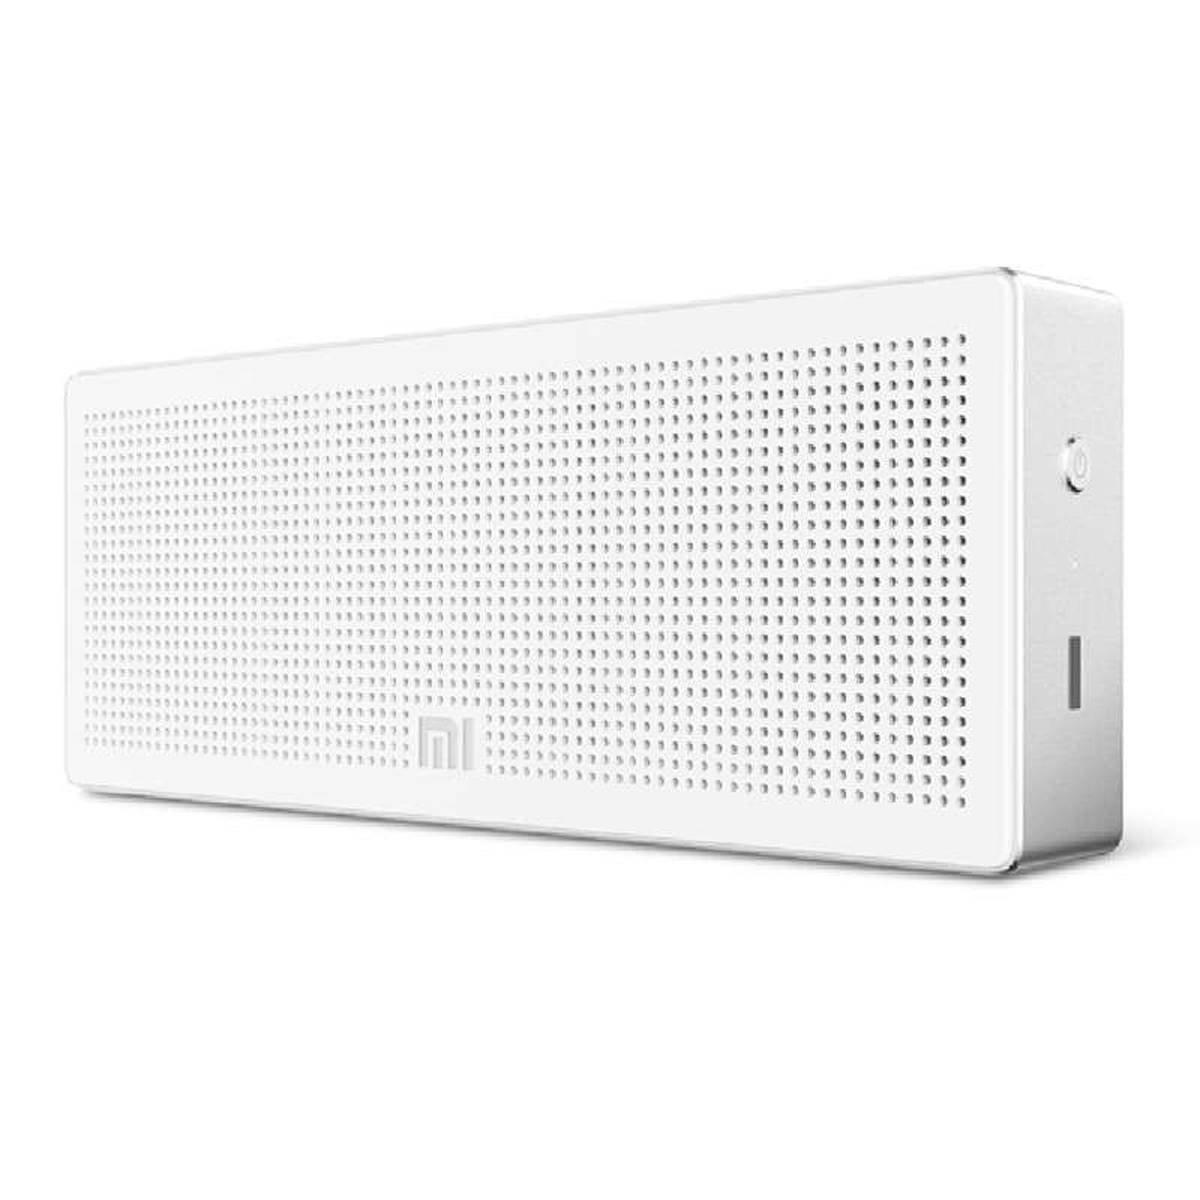 Portable Square Box Xiaomi WIreless Bluetooth 4.0 Speaker Hands-free Calls Music Player